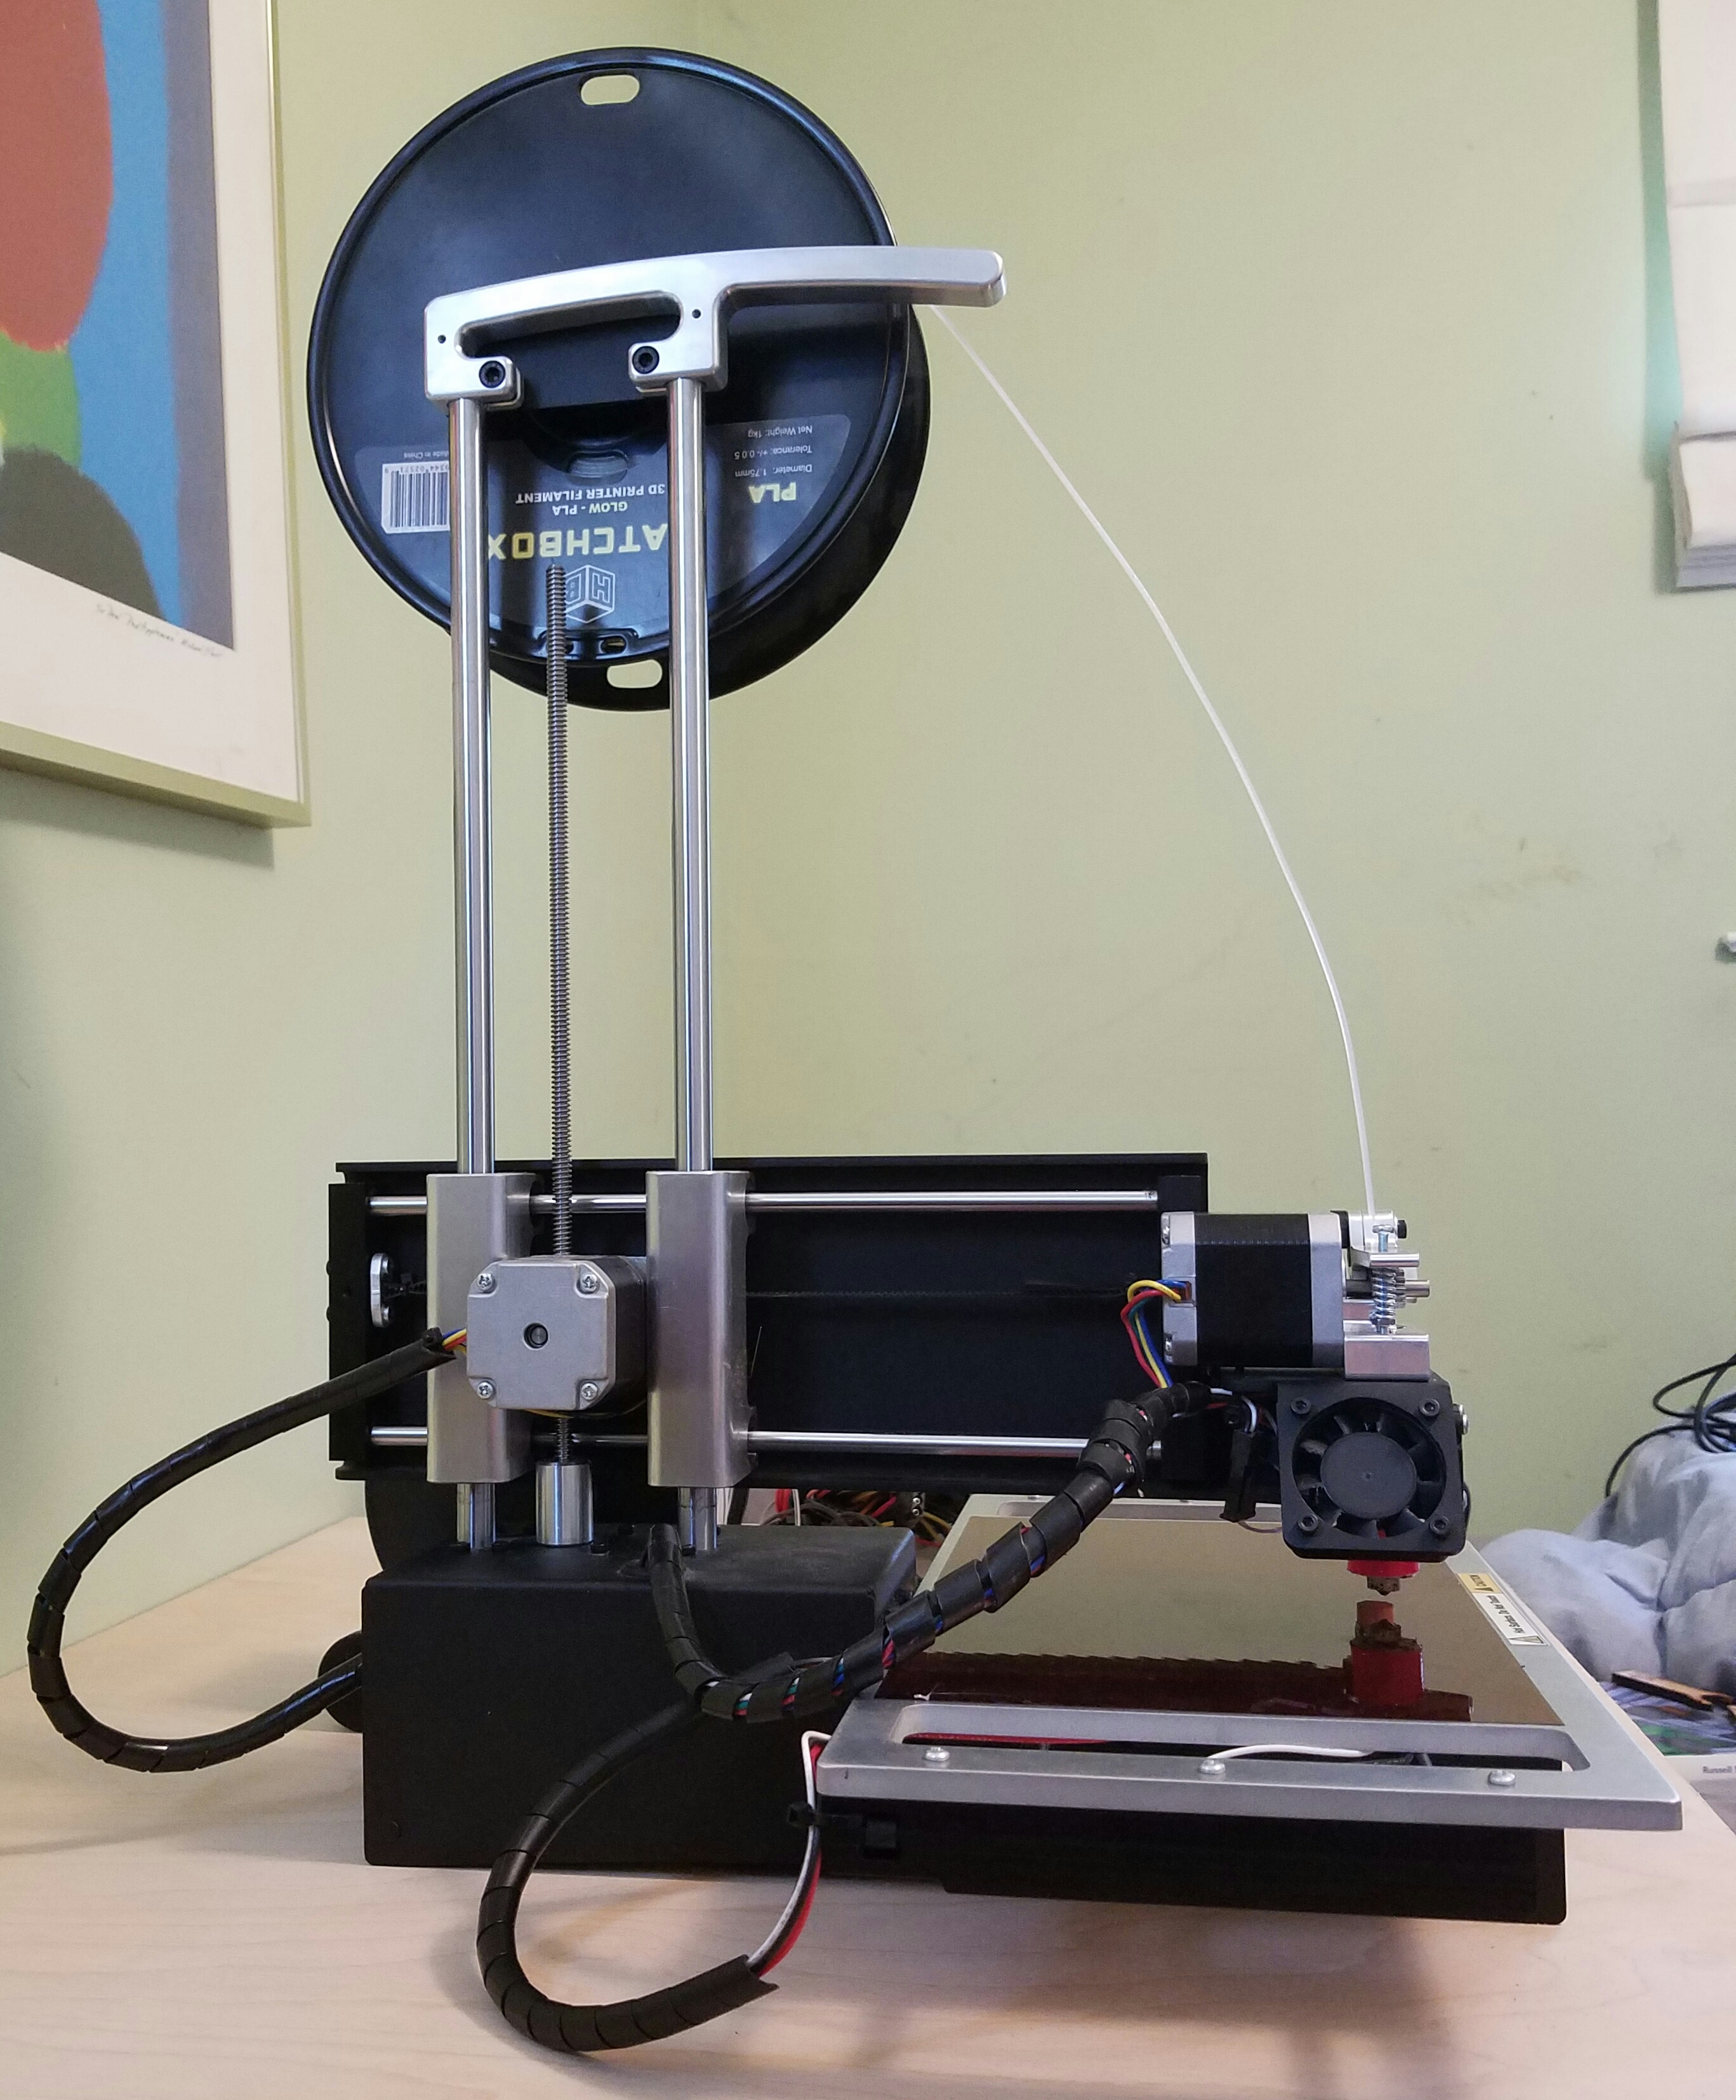 how to flash new firmware to printrbot simple 1405